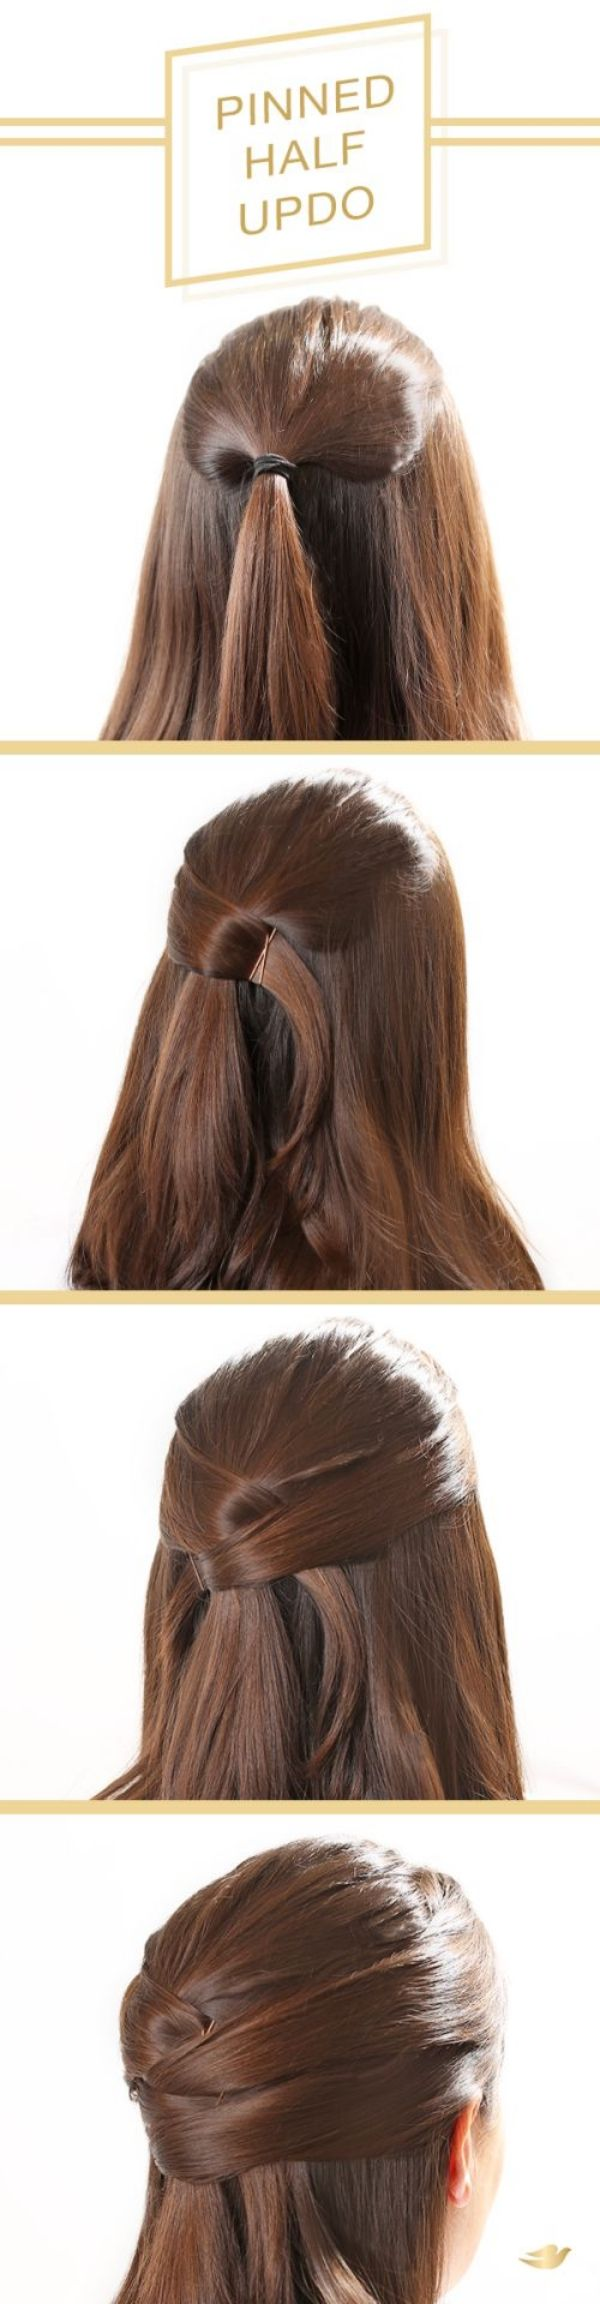 12 Simple Five Minute Hairstyles for Office Women (Complete